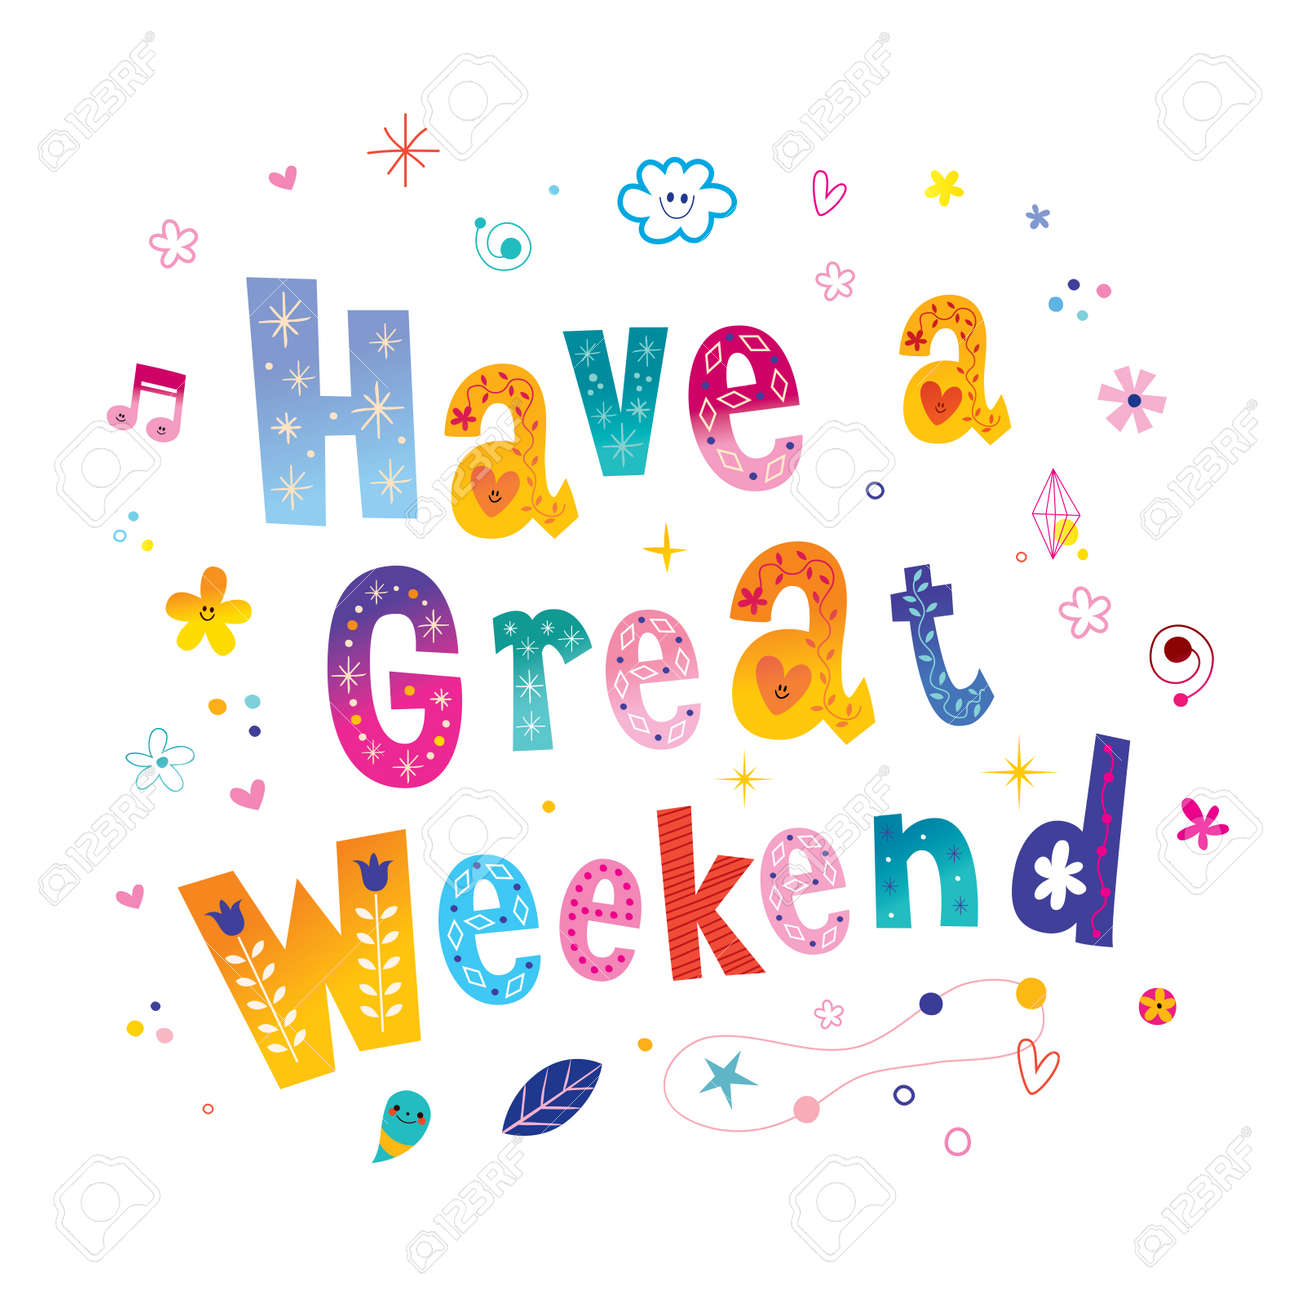 Have a great weekend - 120478977